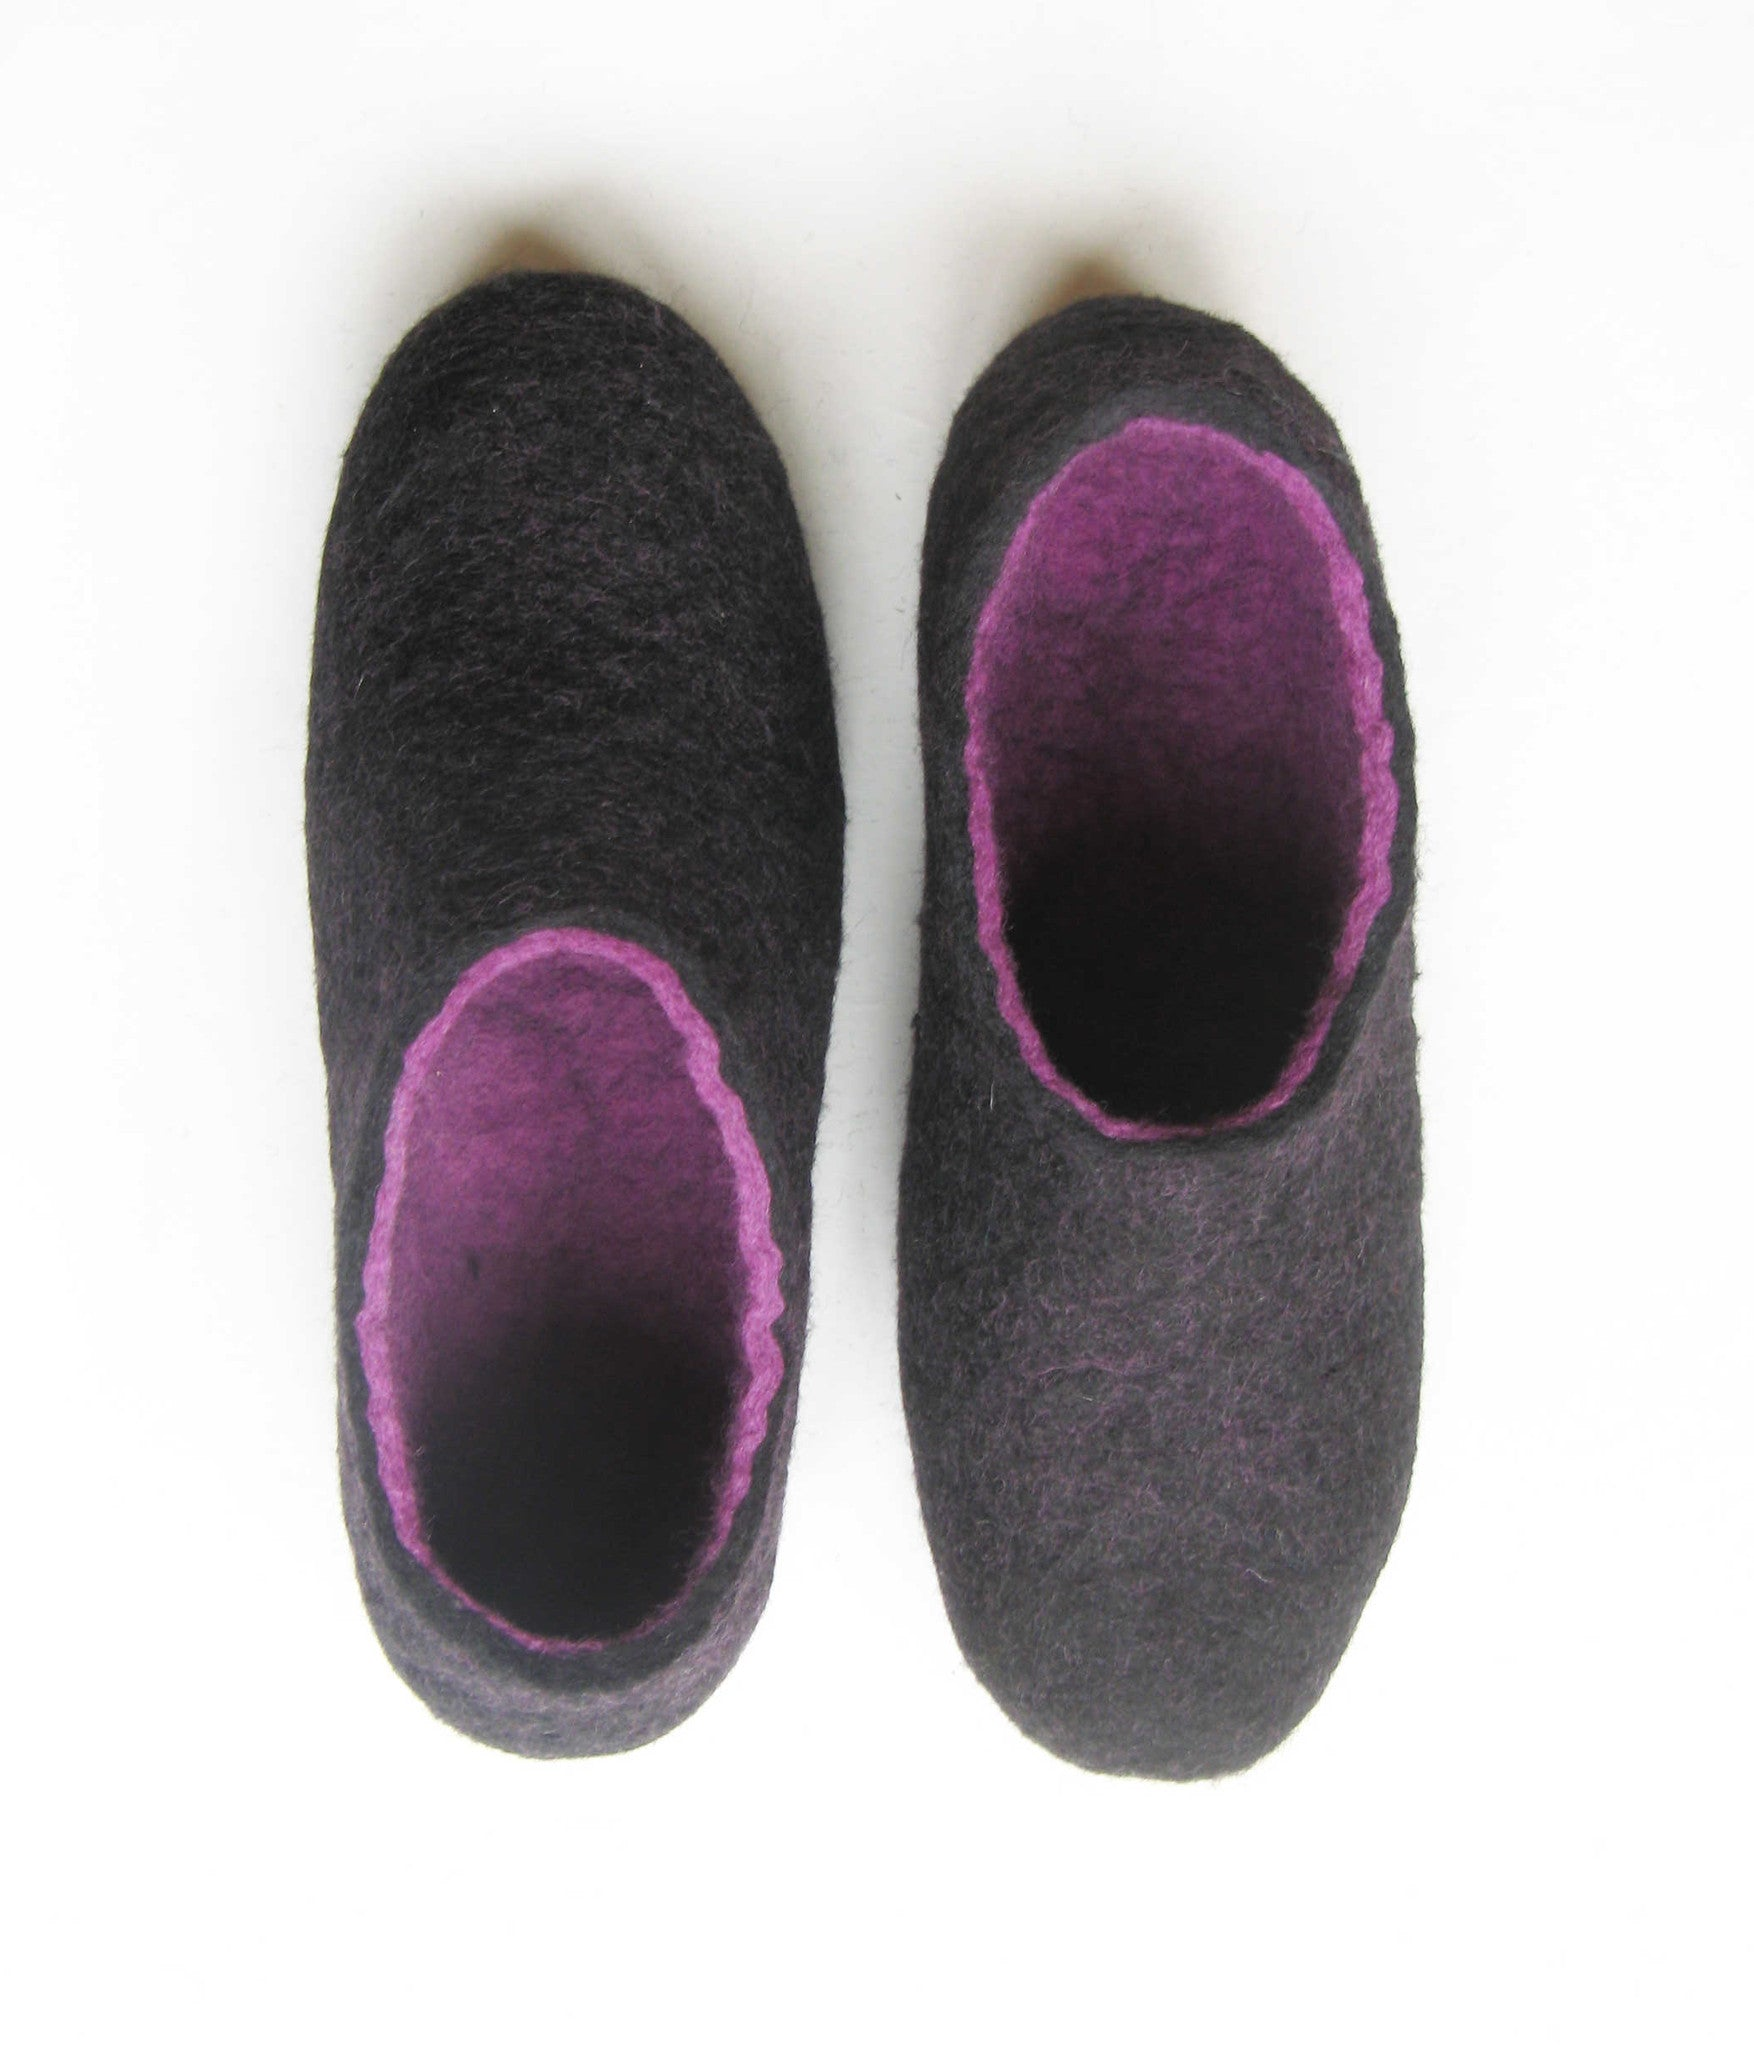 Womens Indoor Felted Slippers Purple Black - Wool Walker  - 5